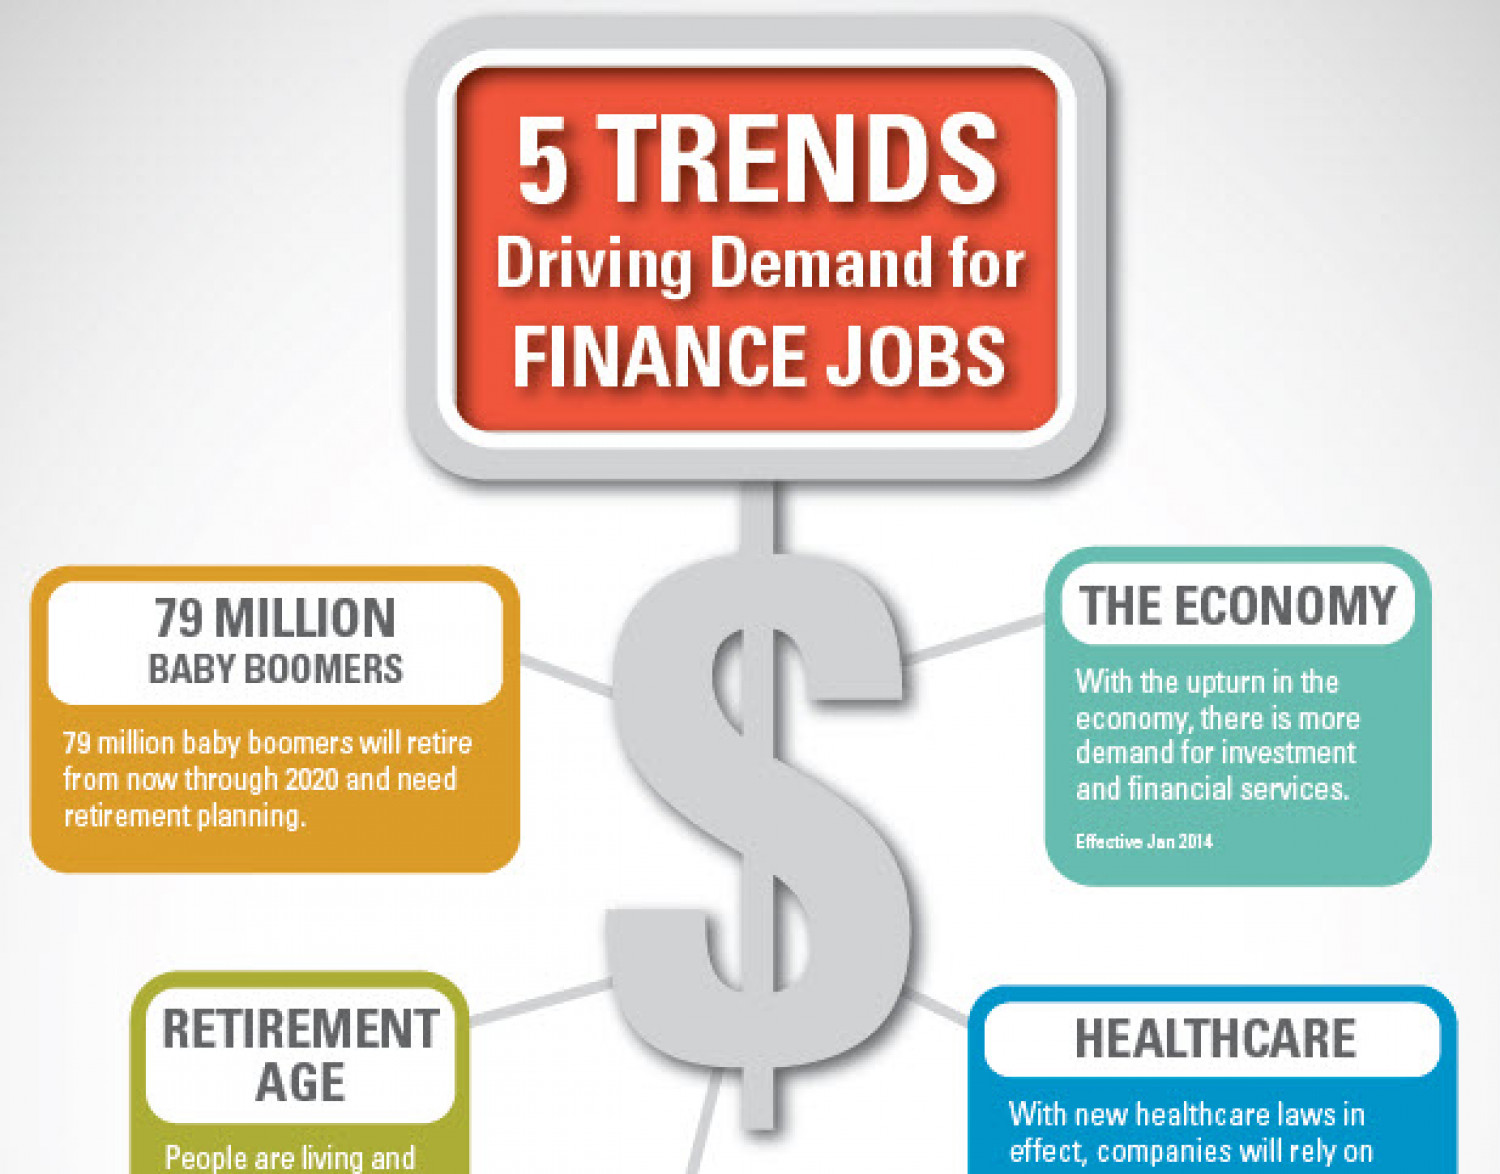 5-trends-driving-demand-for-finance-jobs_53594618f20f4_w1500.jpg